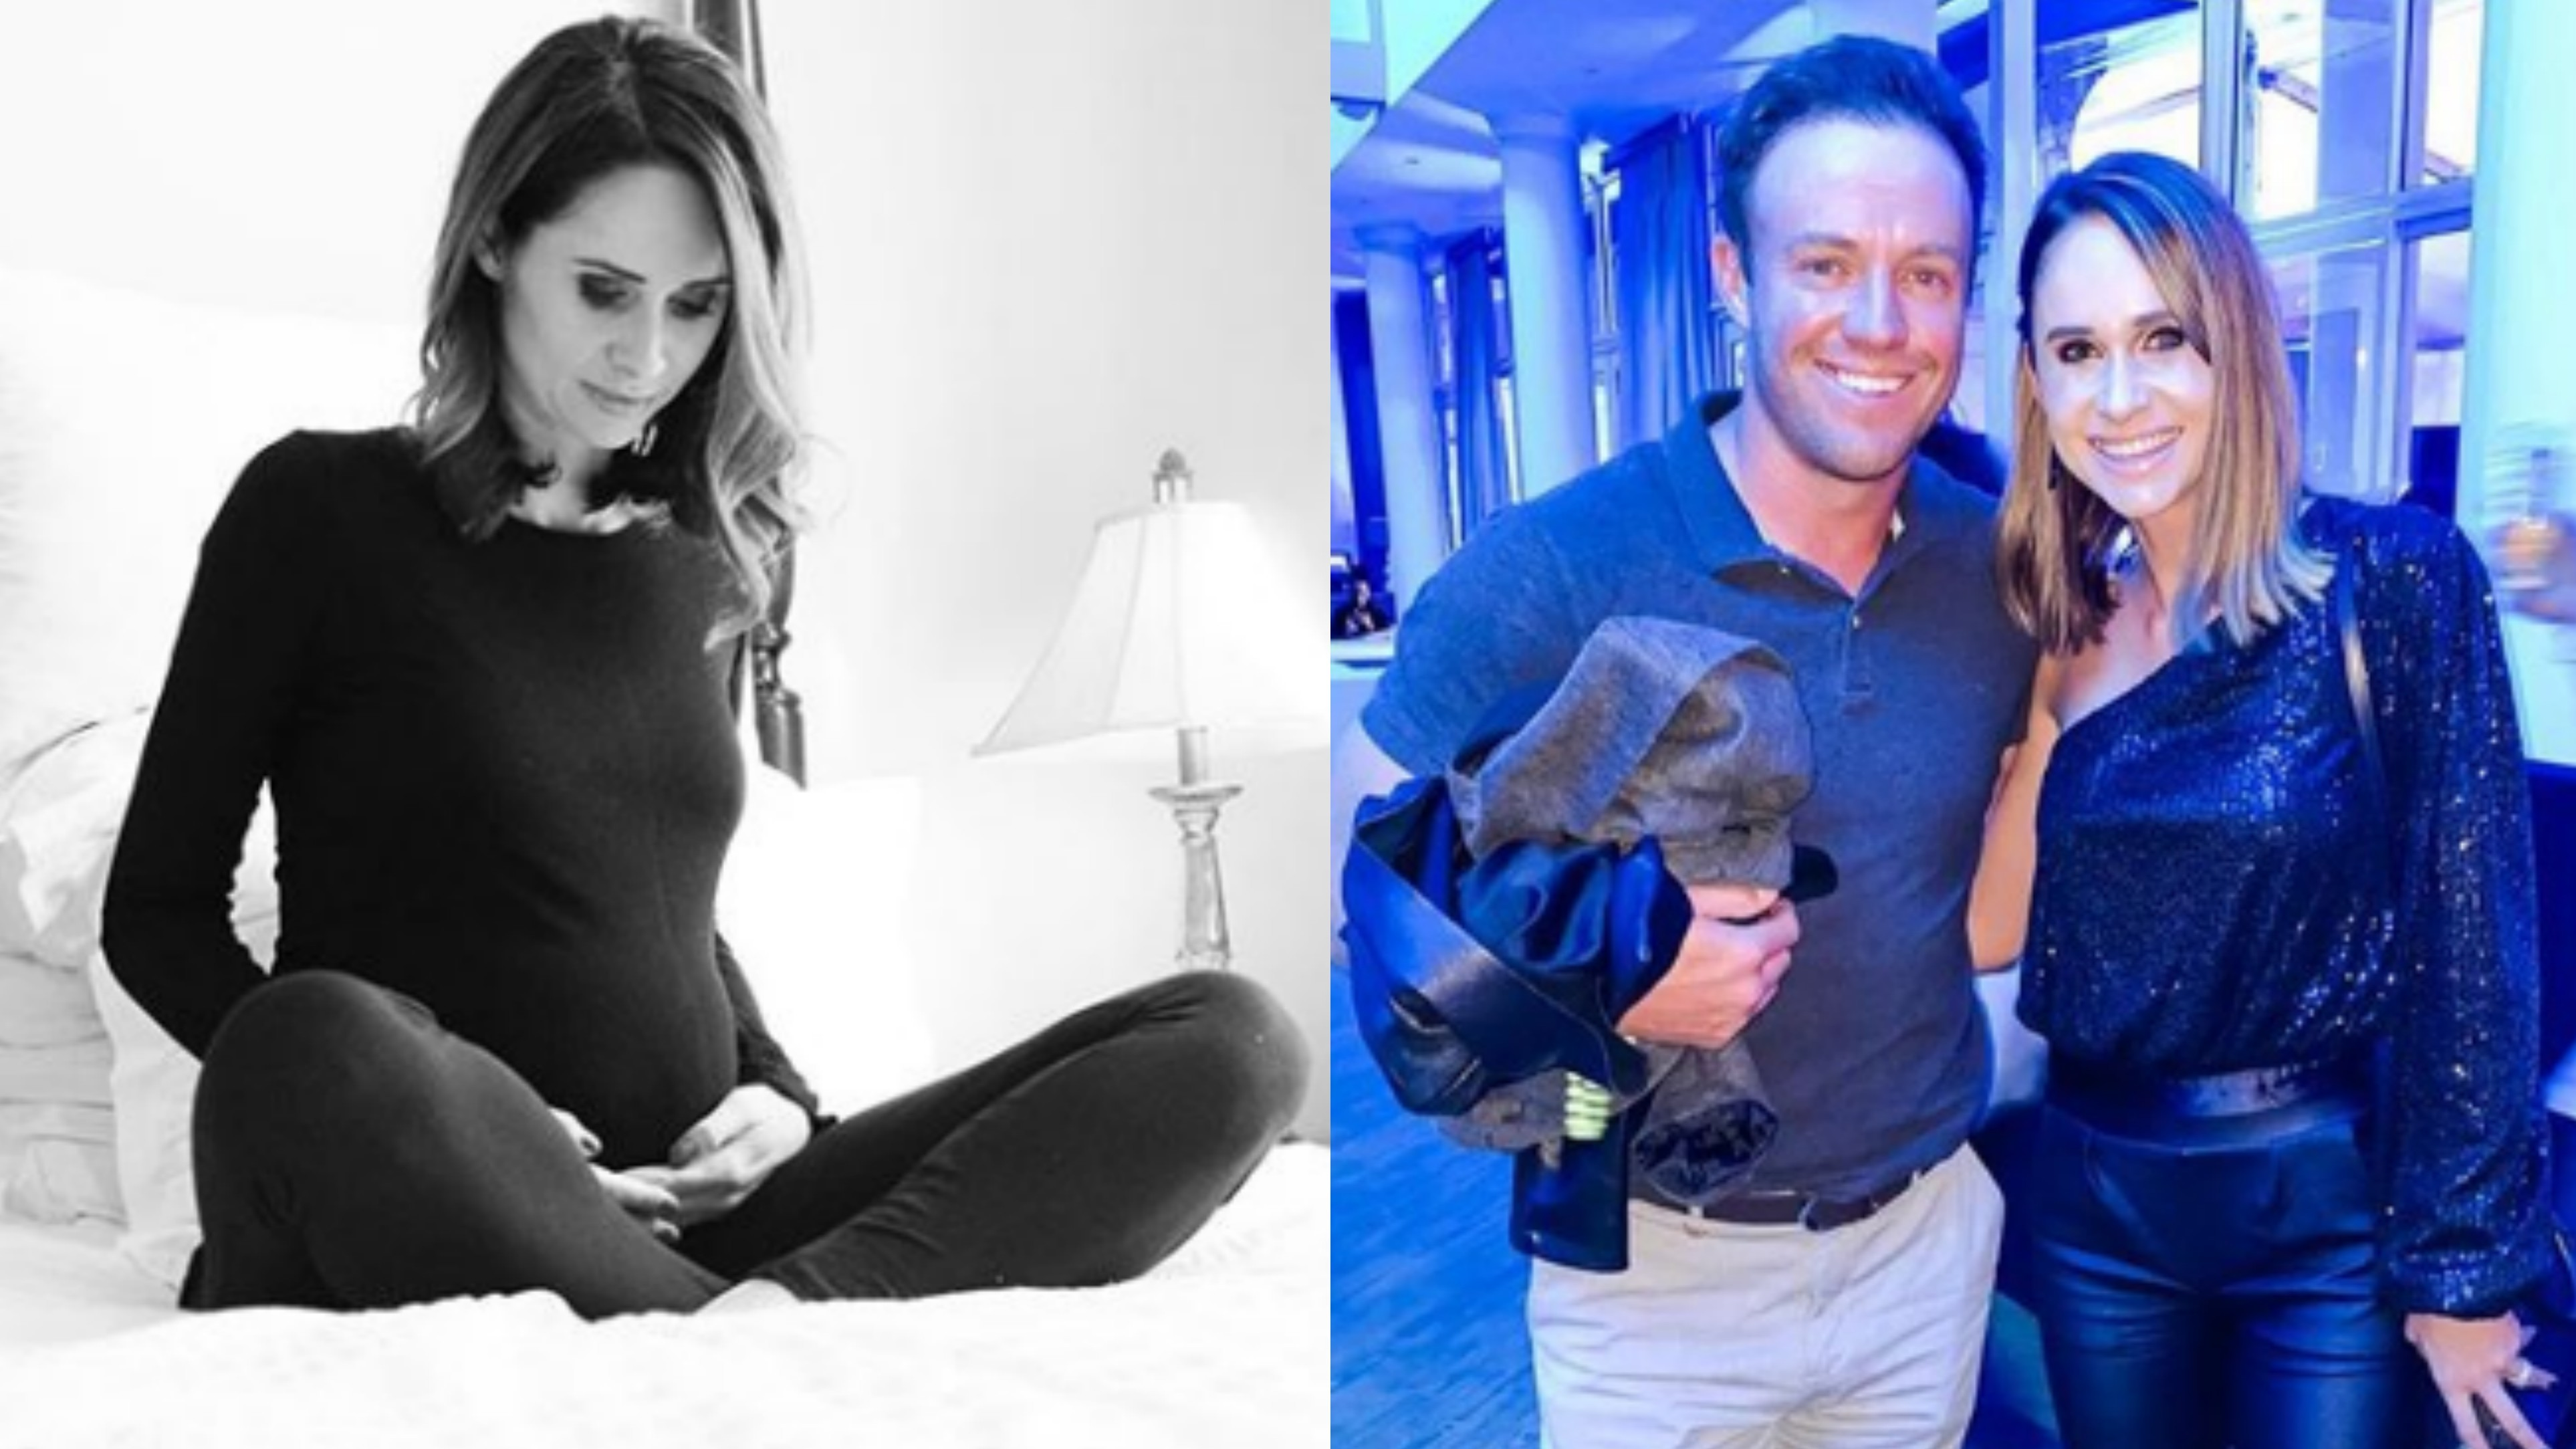 AB de Villiers and wife Danielle set to welcome third child; Anushka Sharma congratulates them